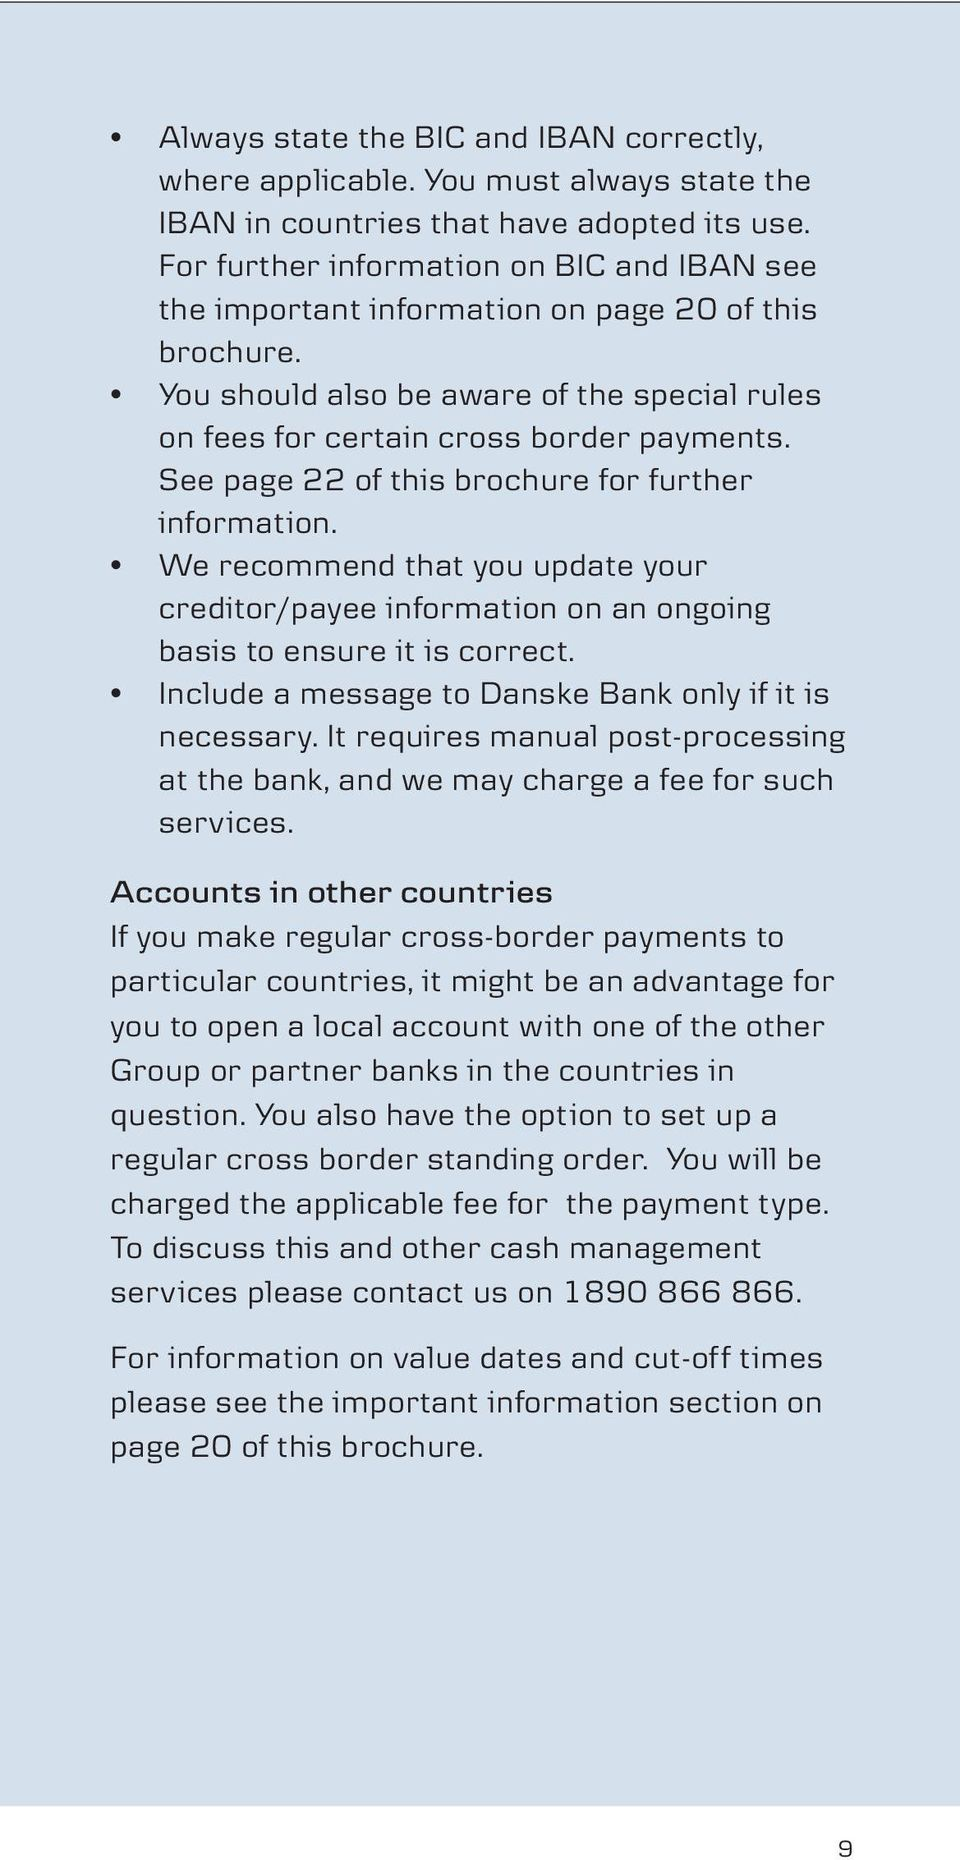 See page 22 of this brochure for further information. We recommend that you update your creditor/payee information on an ongoing basis to ensure it is correct.